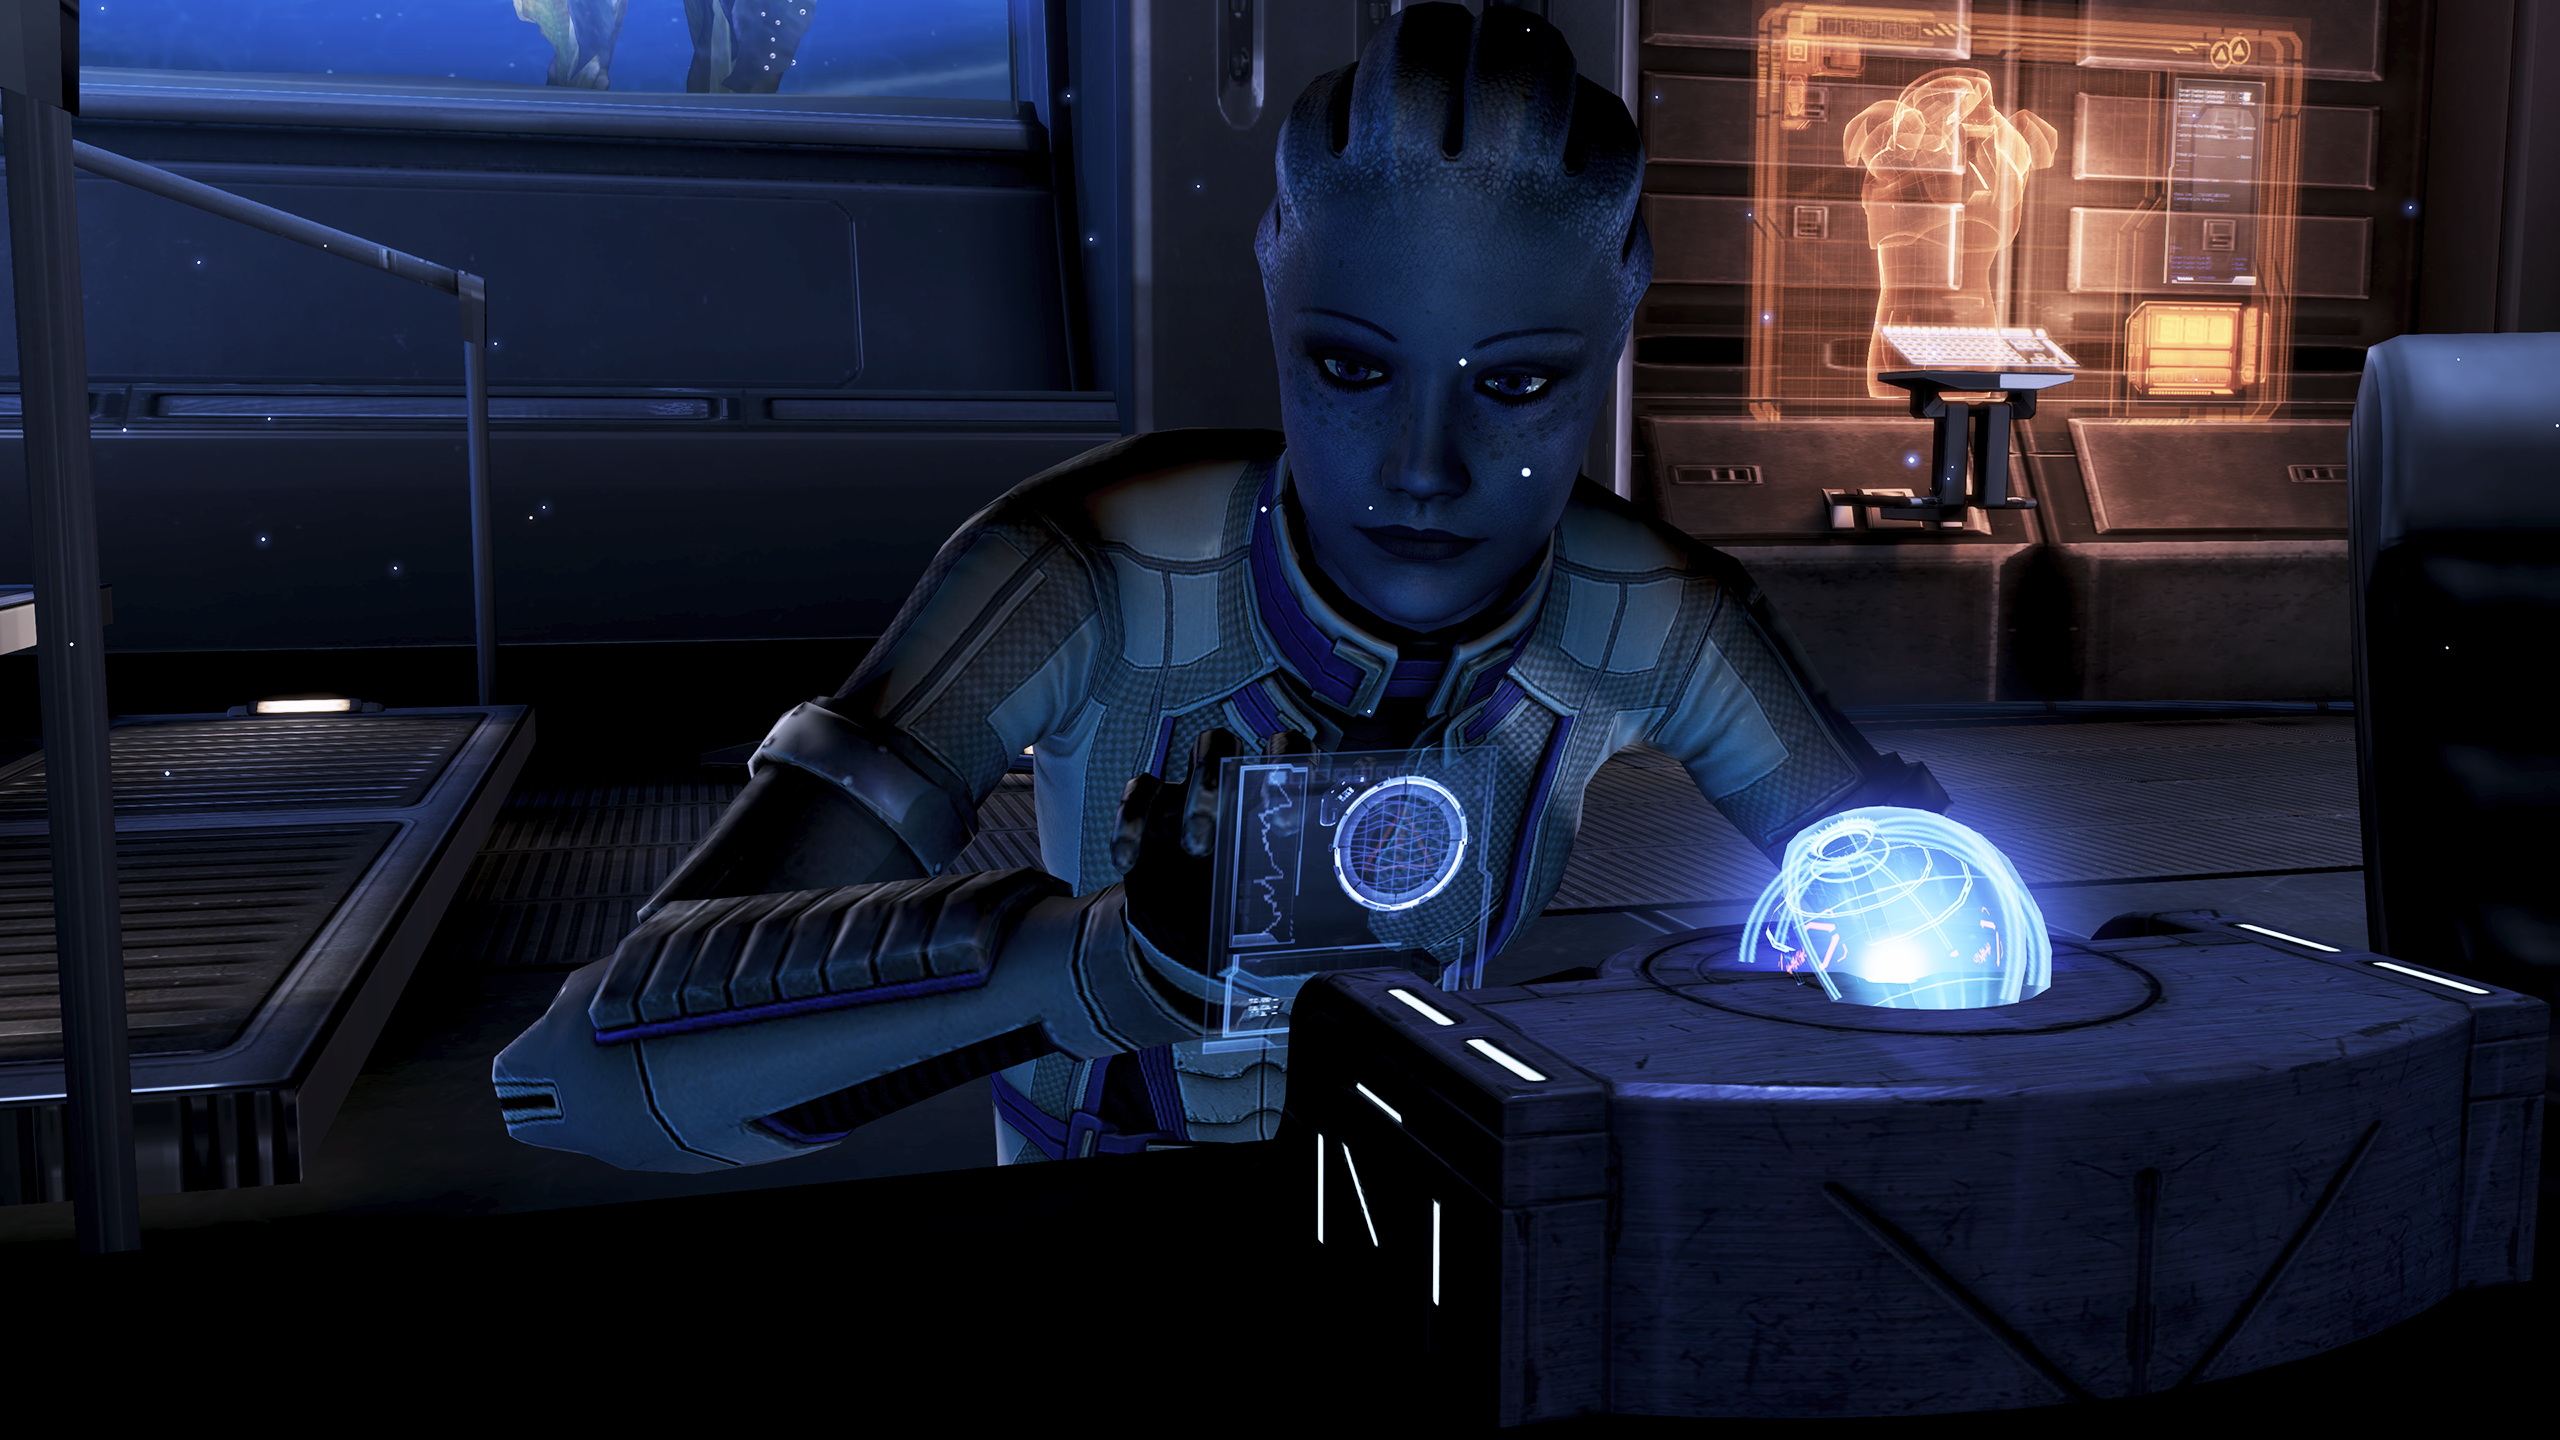 Liara nackt hentai pictures